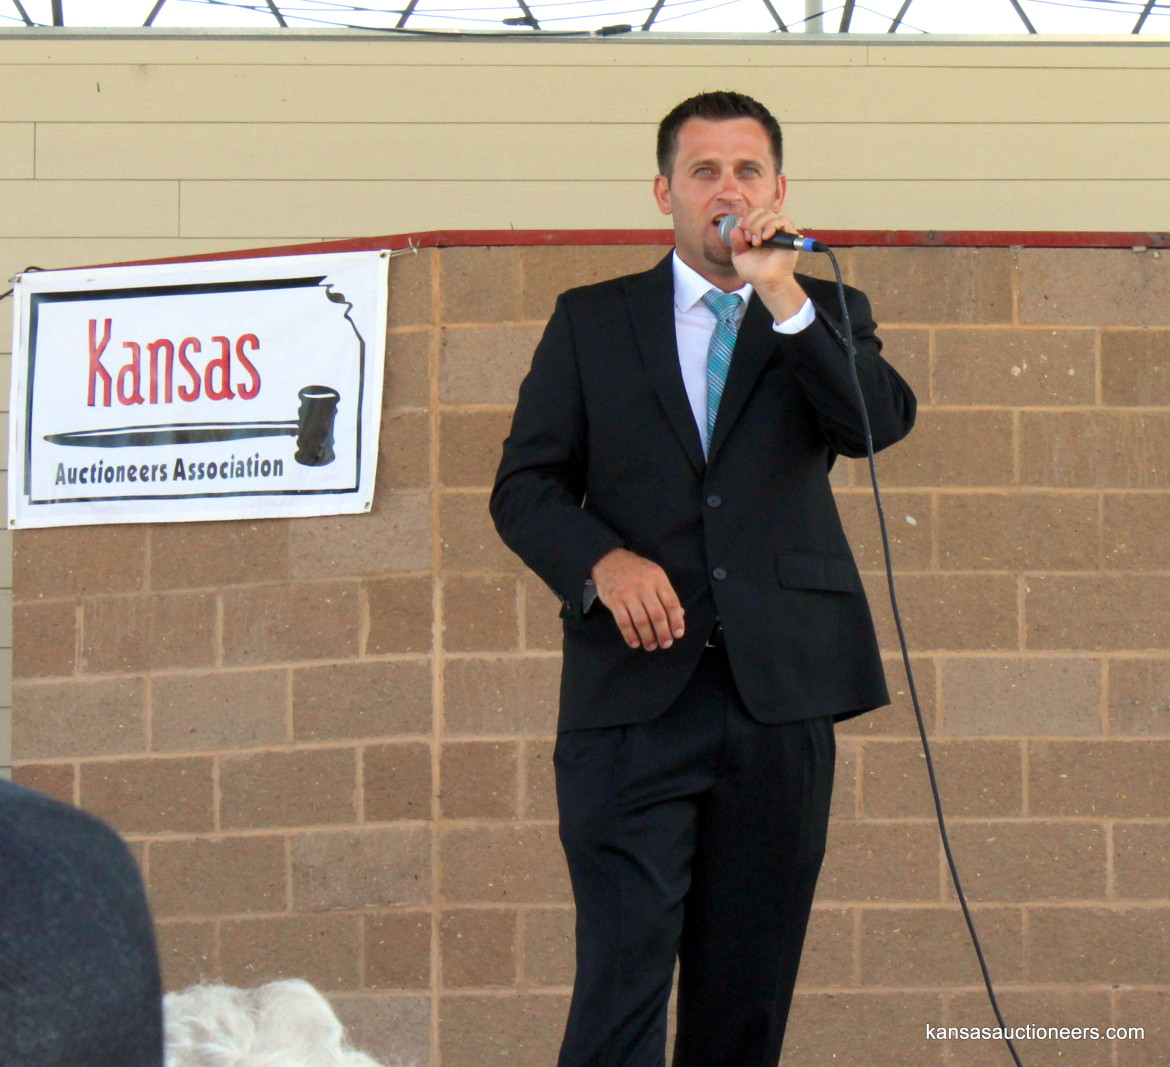 Titus Yutzy competing in the 2015 Kansas Auctioneer finals.